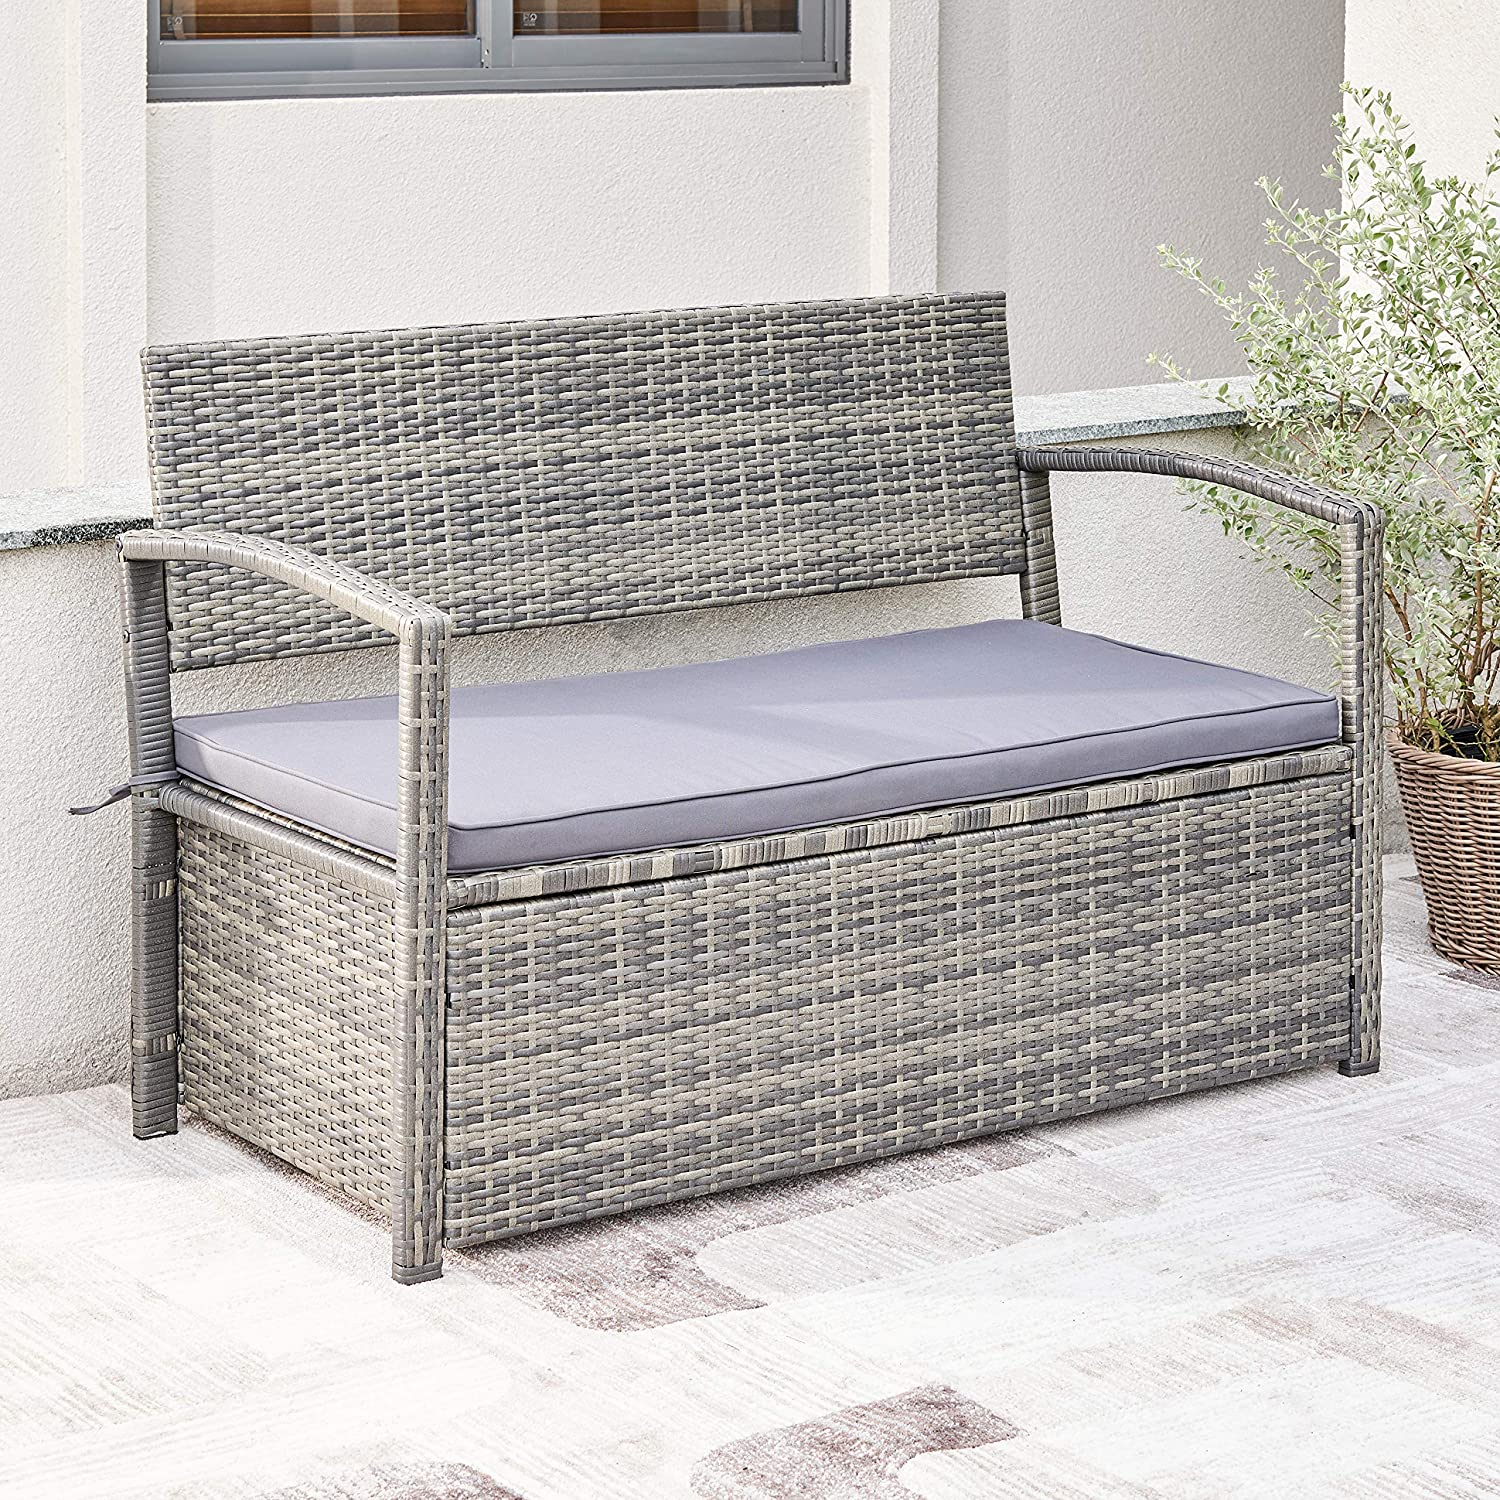 VIFAH V1924 Gabrielle All-Weather gift Resin Lounge Max 63% OFF Sofa Patio Wicker